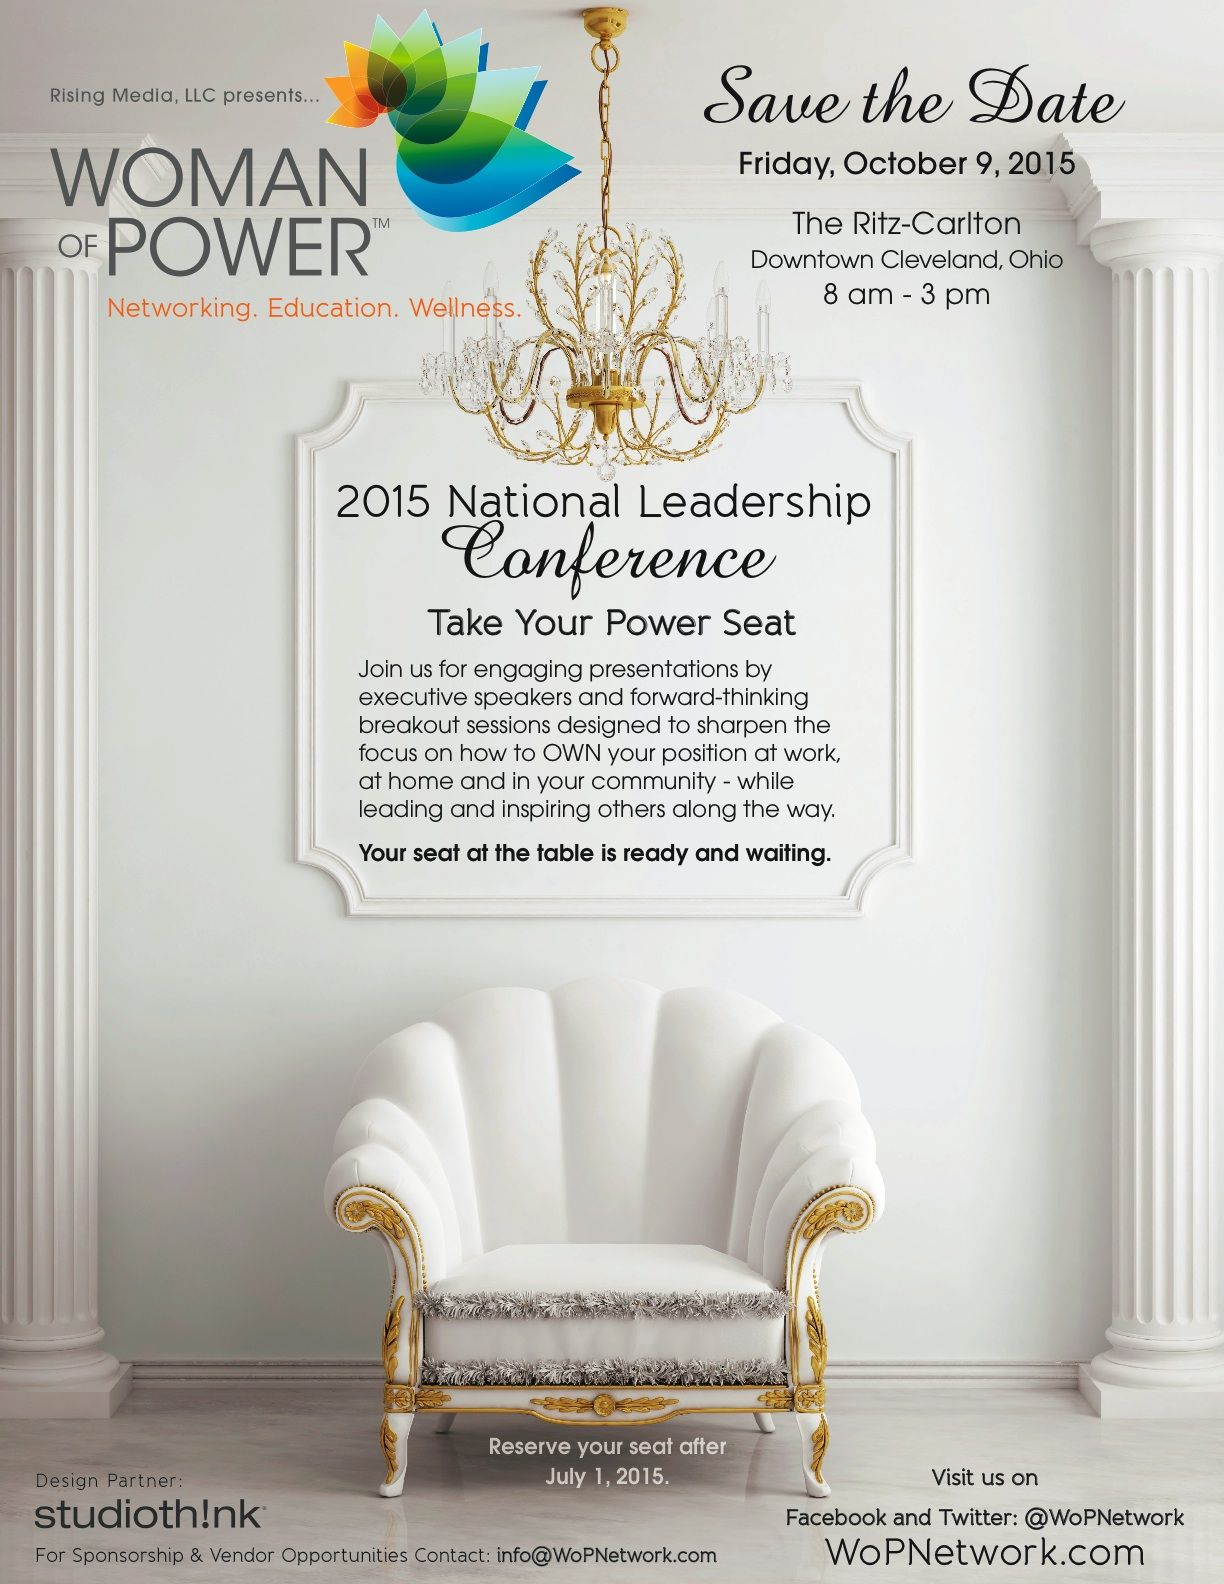 Save the Date! 2015 Woman of Power Conference- Cleveland, Ohio. See you there!